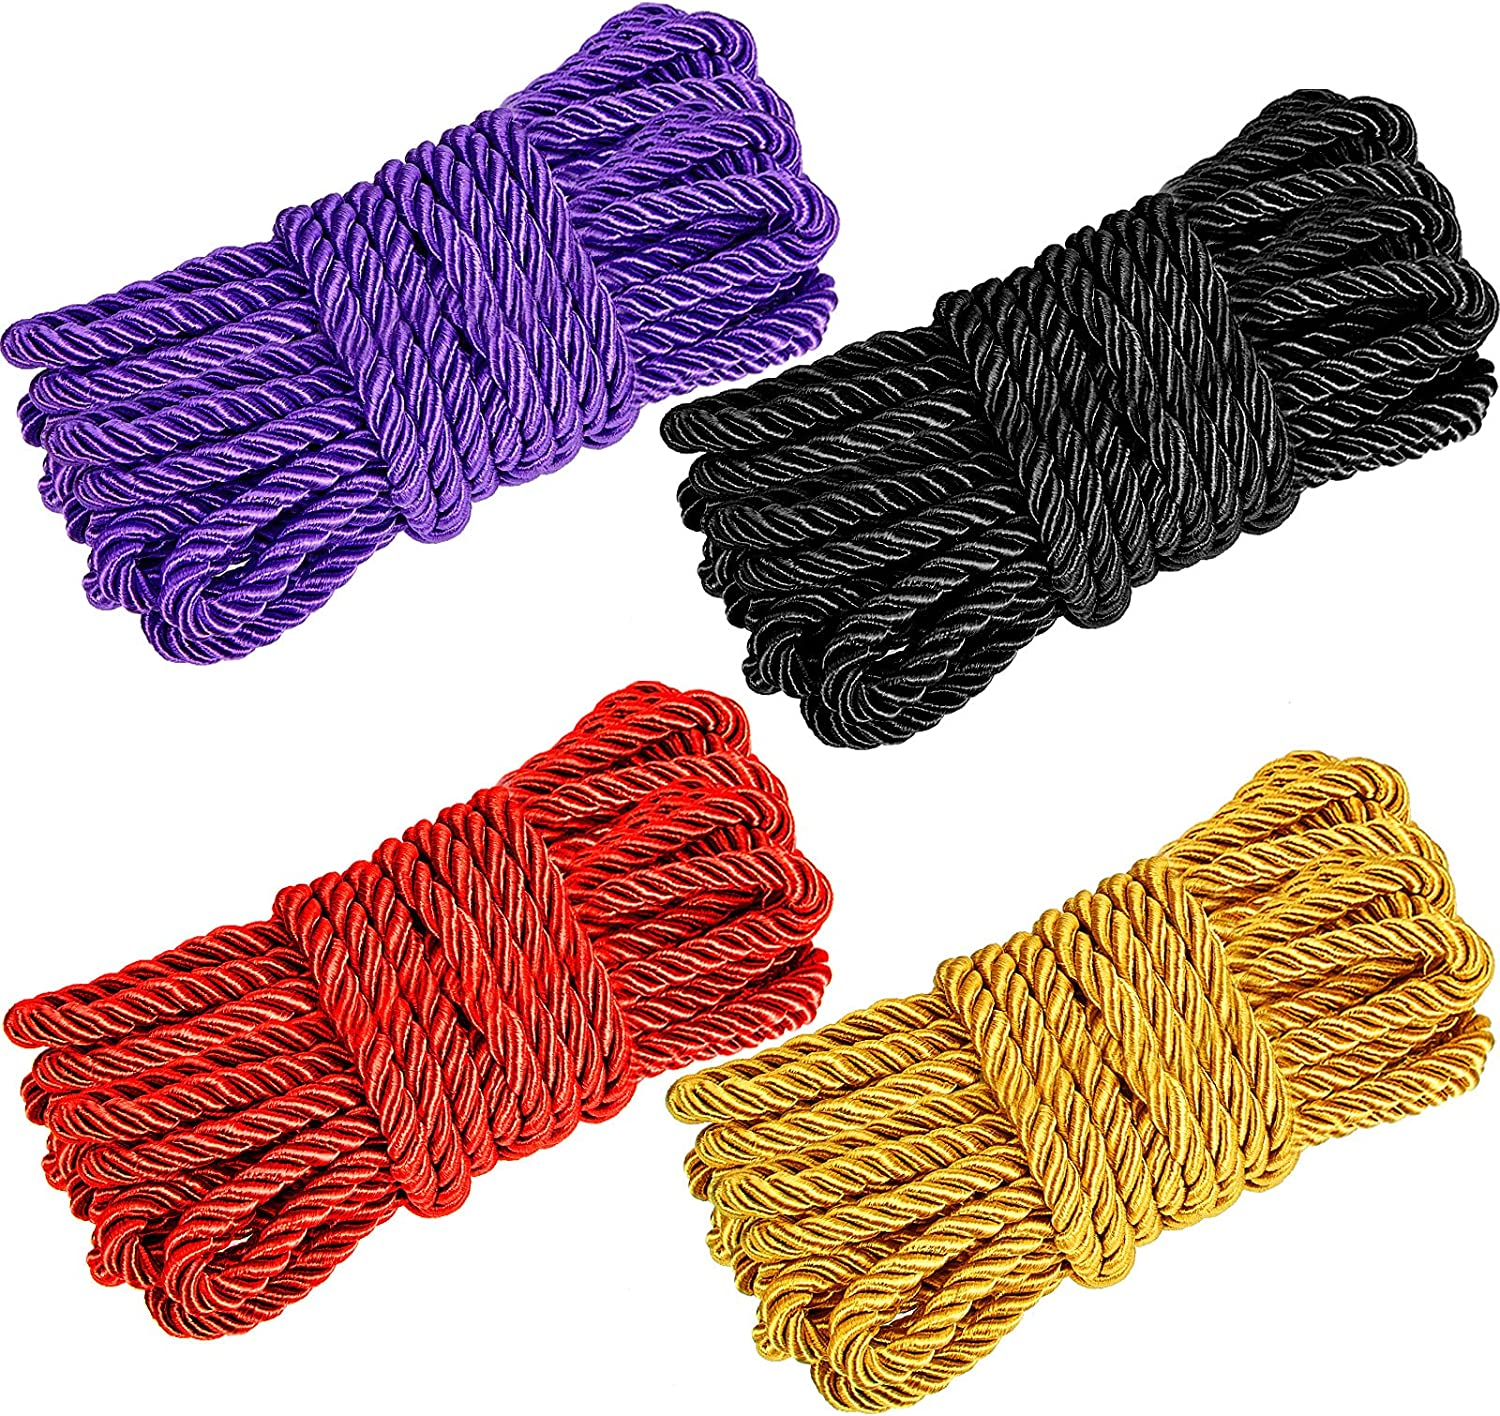 4 Pieces 66 Feet Braided Twisted Silk Diameter Soft 8 Max 50% OFF sold out Ropes mm